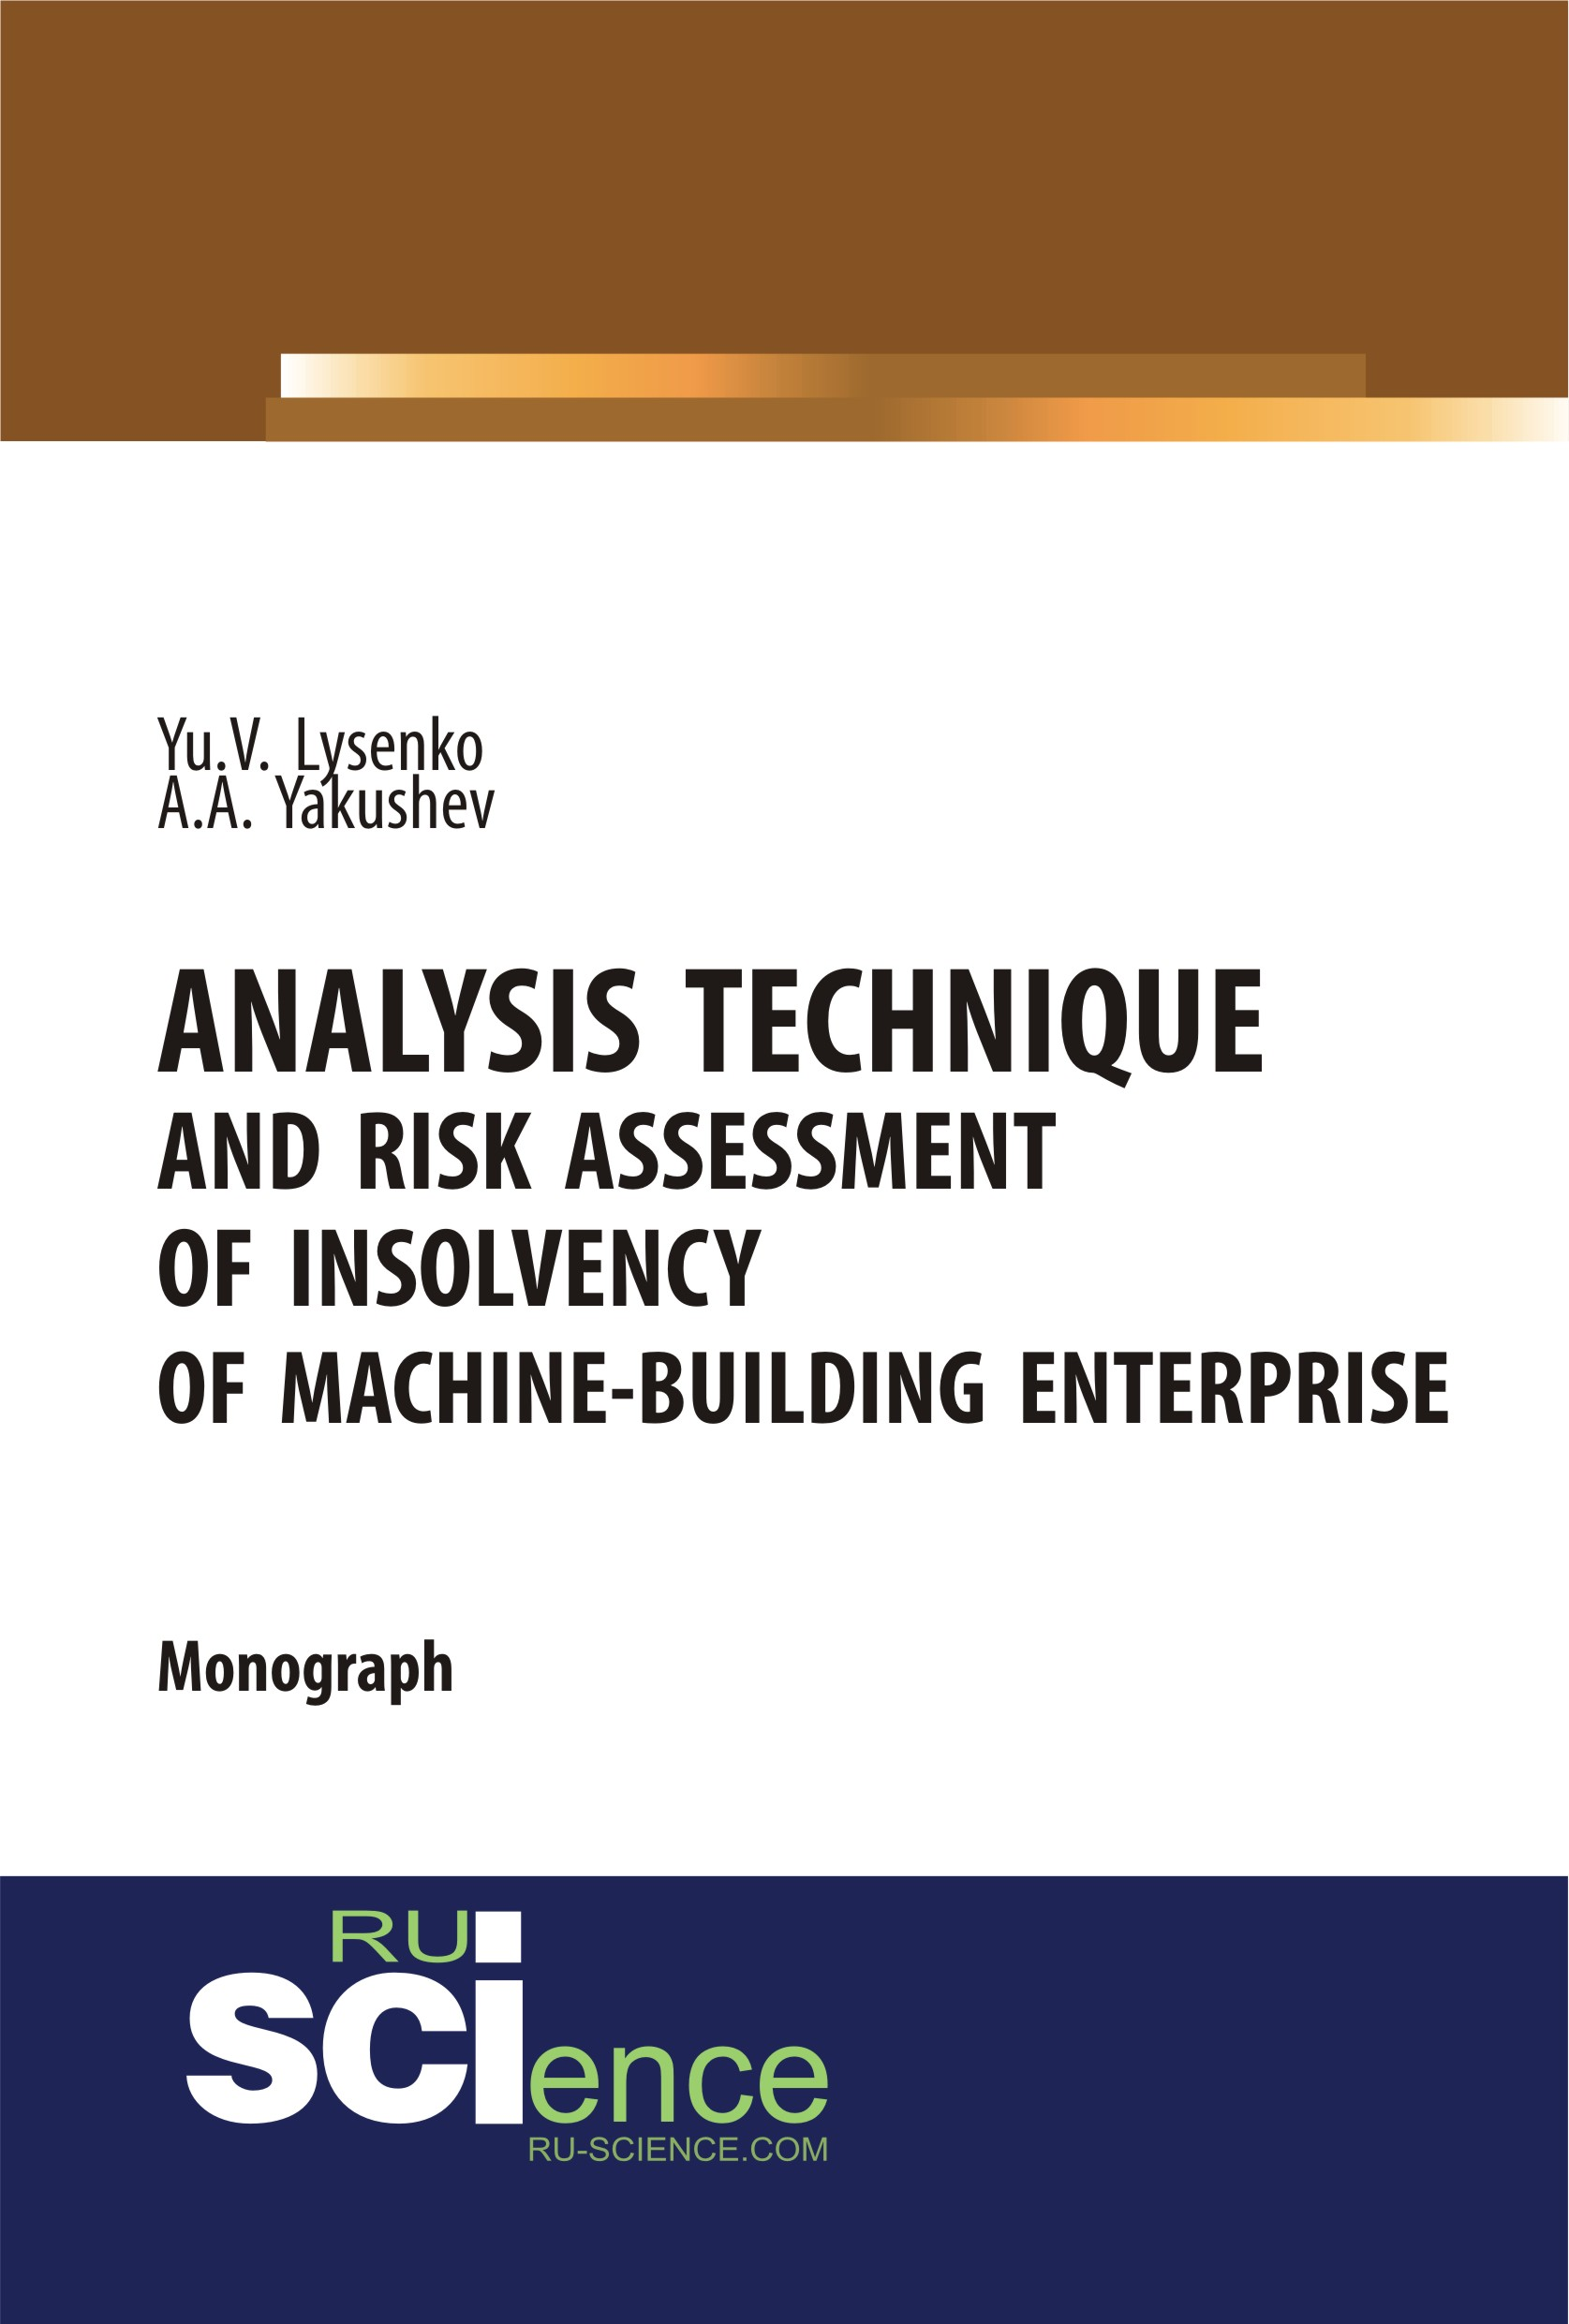 Ю. В. Лысенко Analysis technique and risk assessment of insolvency of machine-building enterprise joseph ofungwu statistical applications for environmental analysis and risk assessment